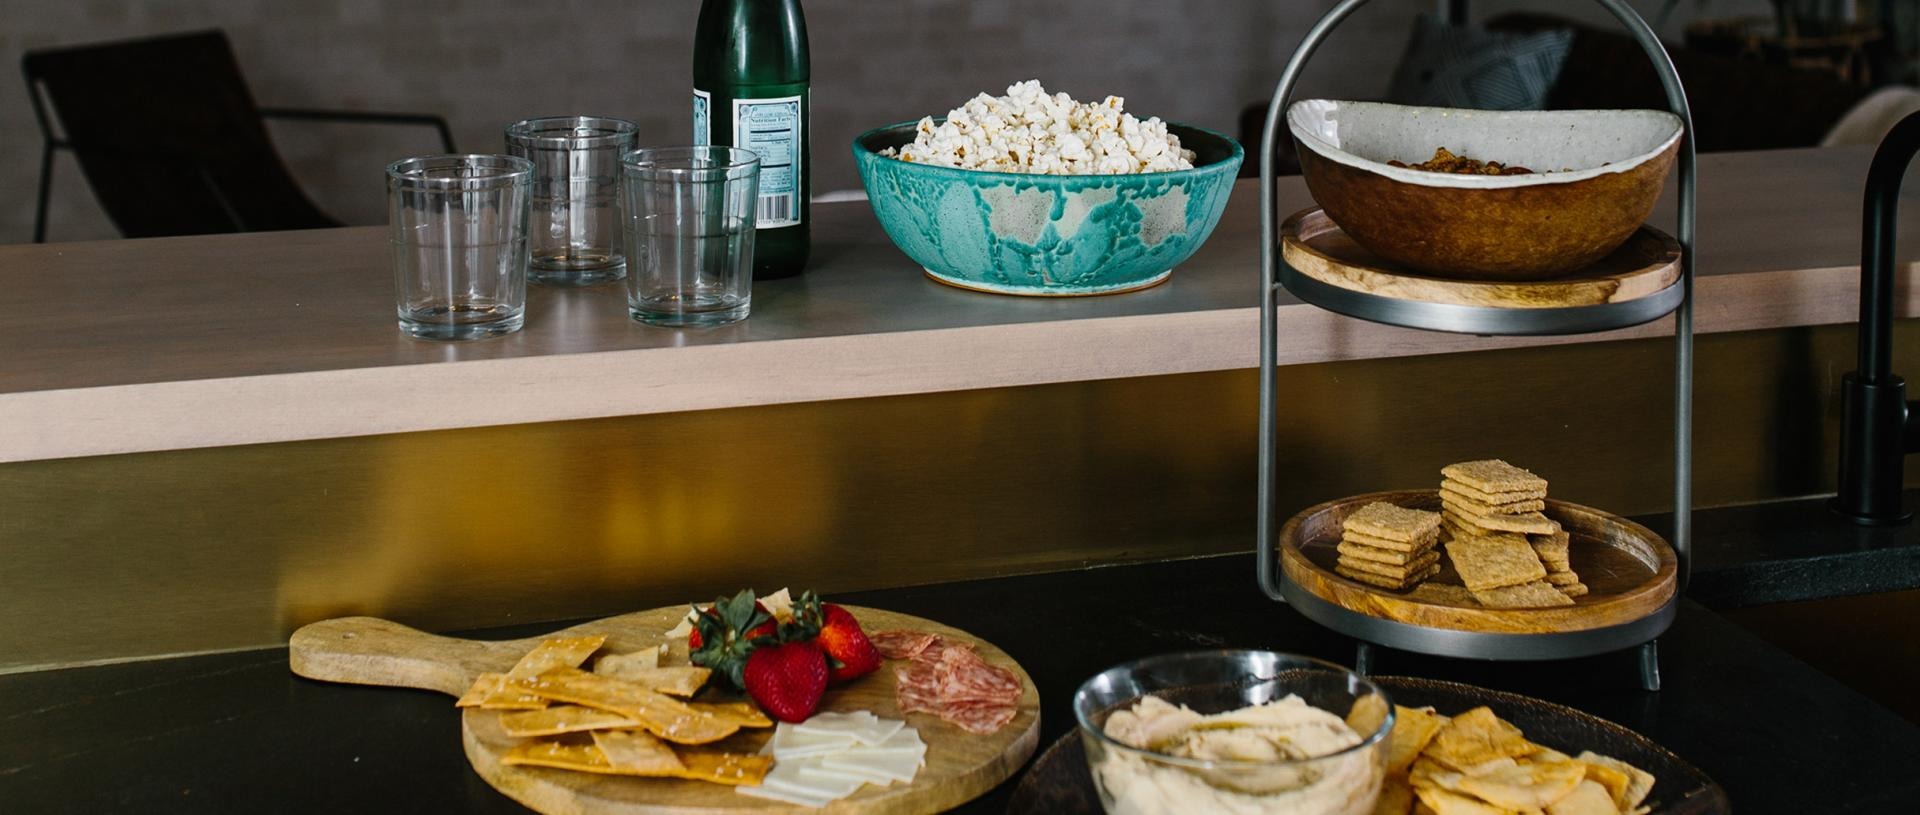 Snacks for TV party on bar